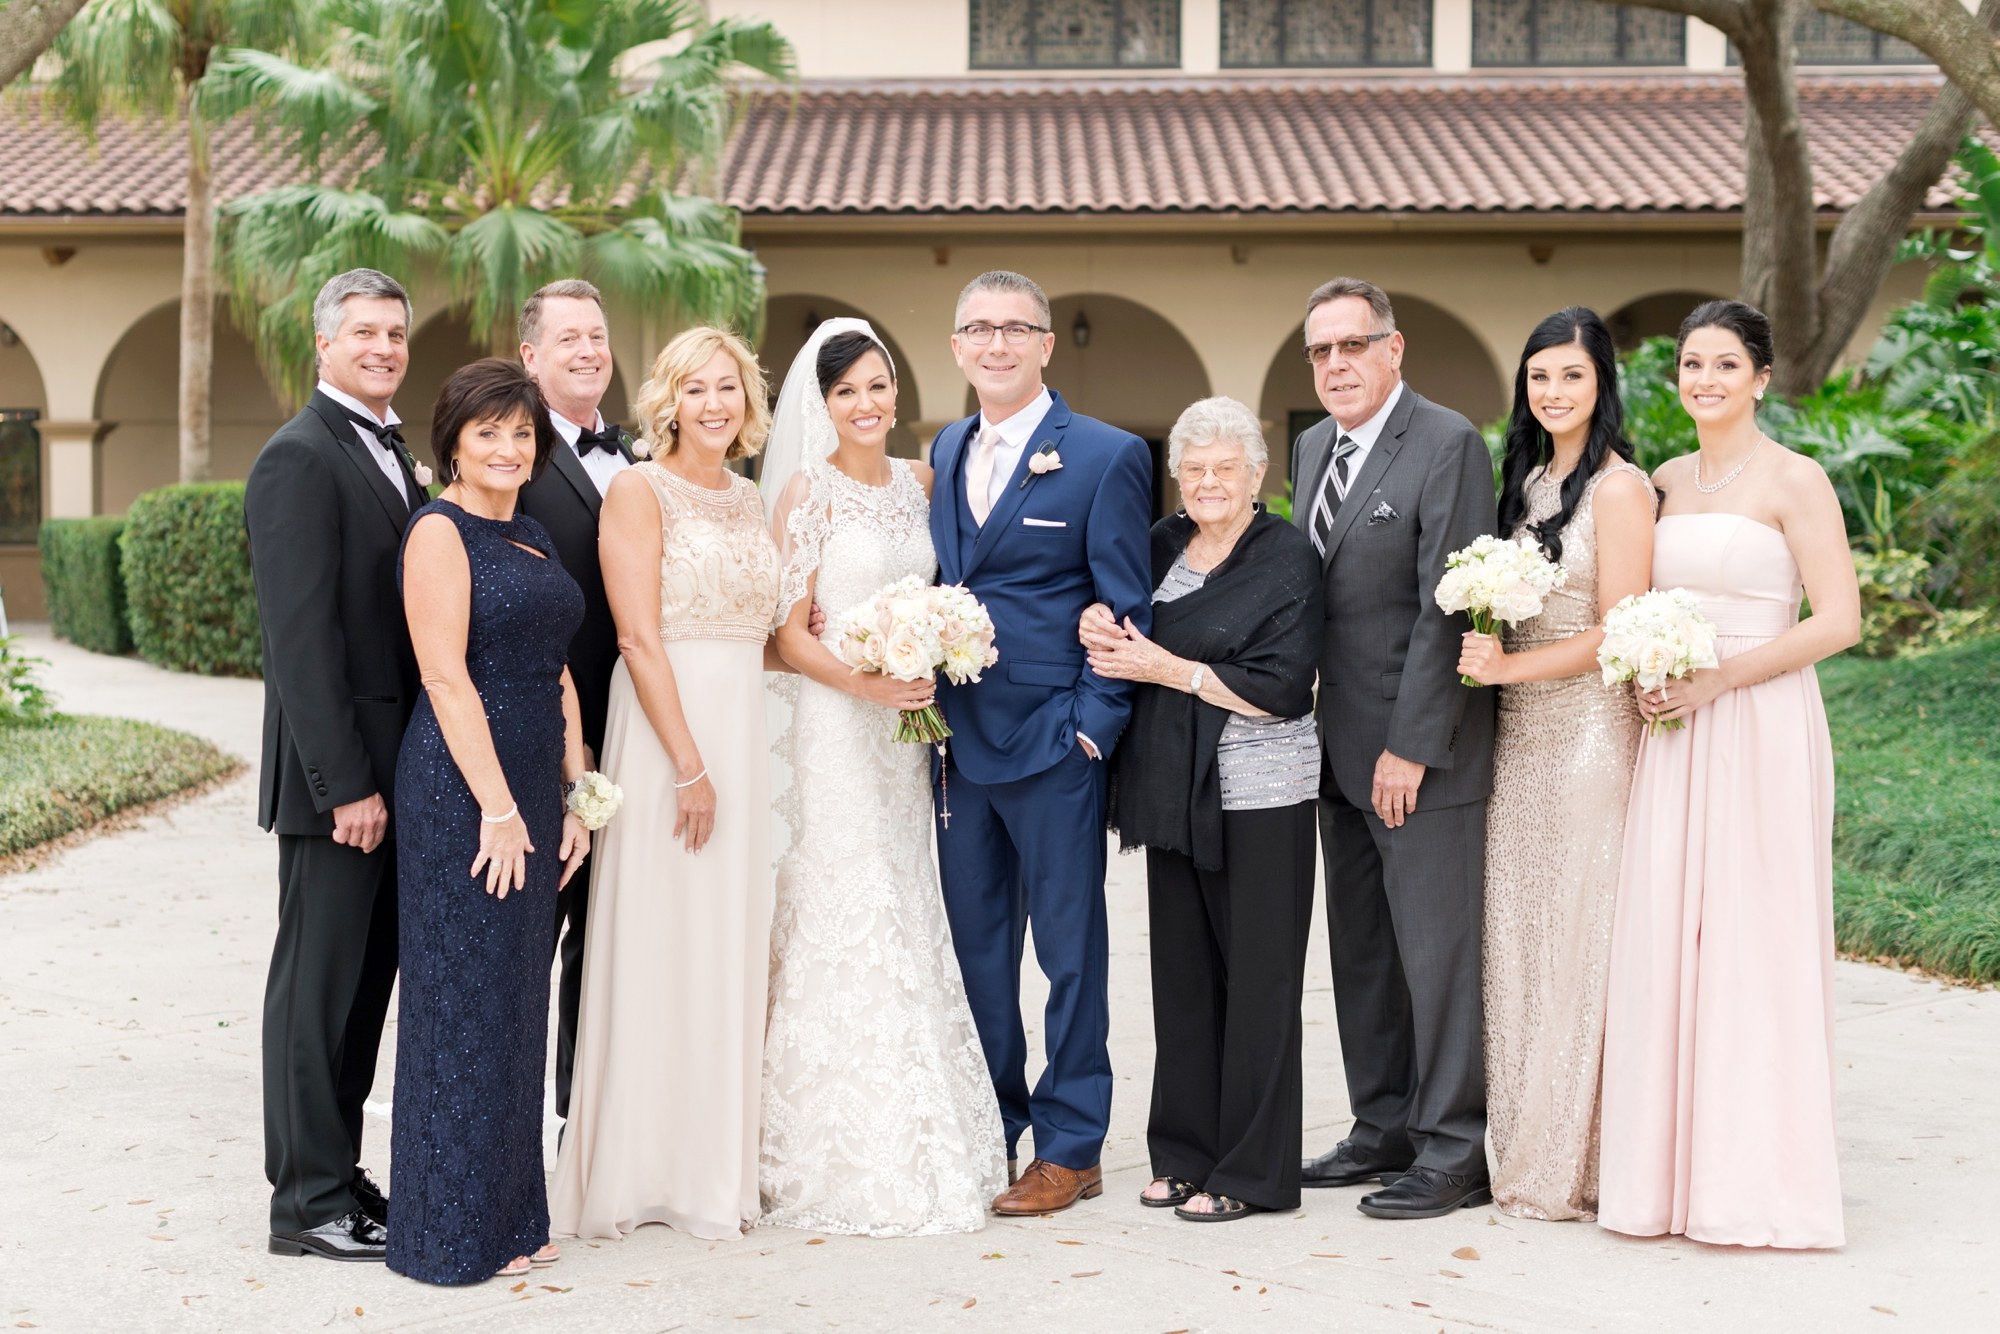 How To Create A Wedding Day Timeline For Photos